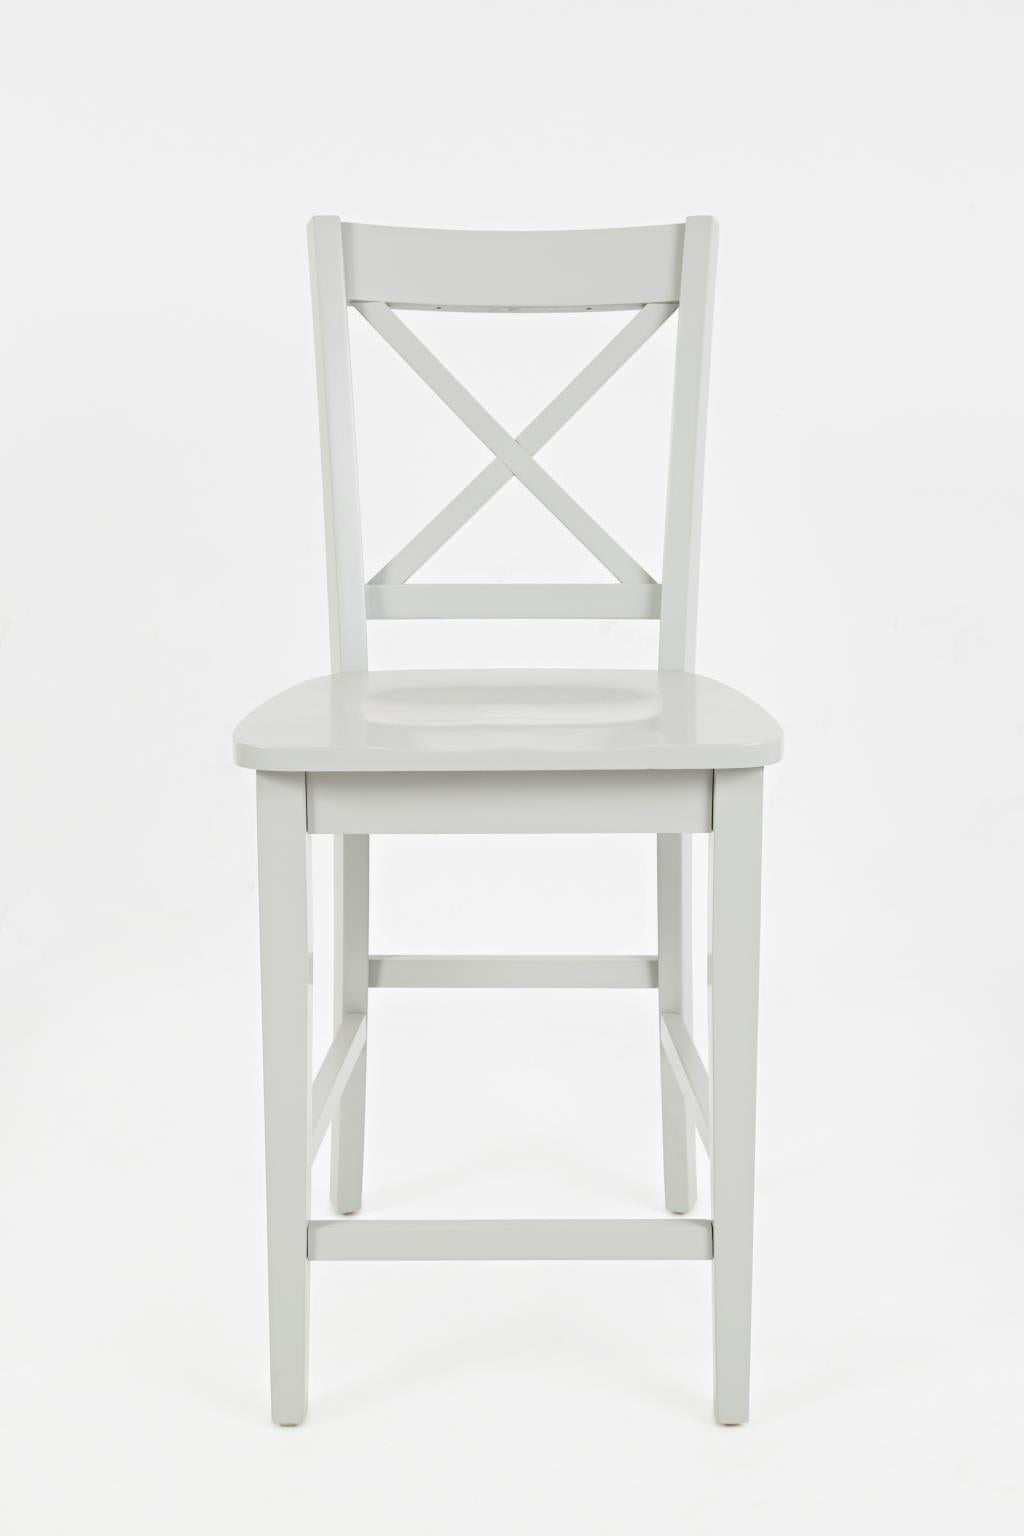 Eastern Rosella Counter Height Stools - Lifestyle Furniture